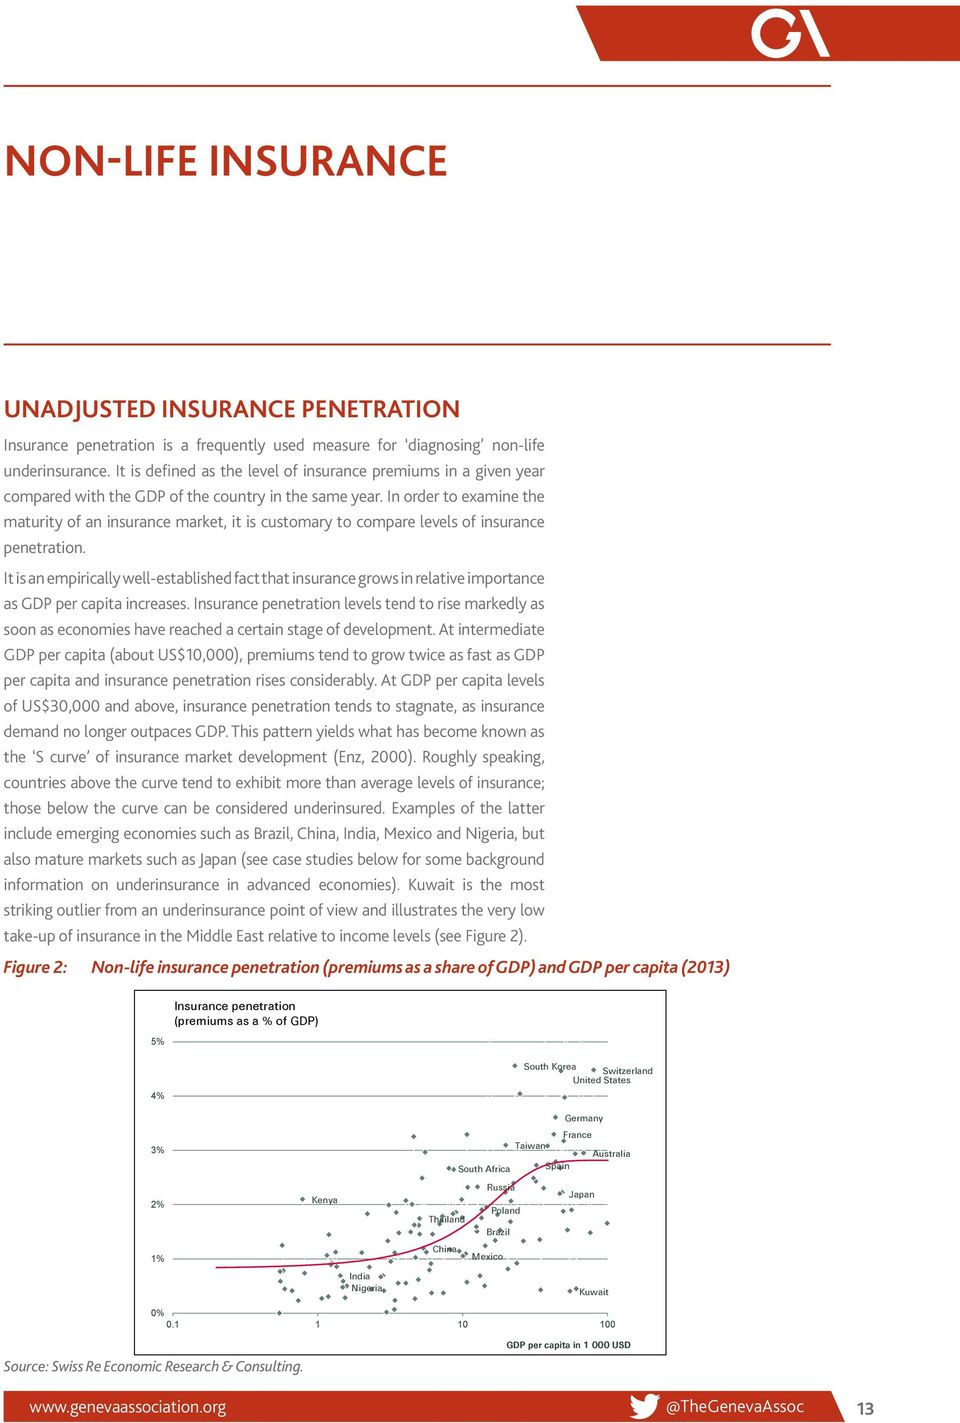 In order to examine the maturity of an insurance market, it is customary to compare levels of insurance penetration.